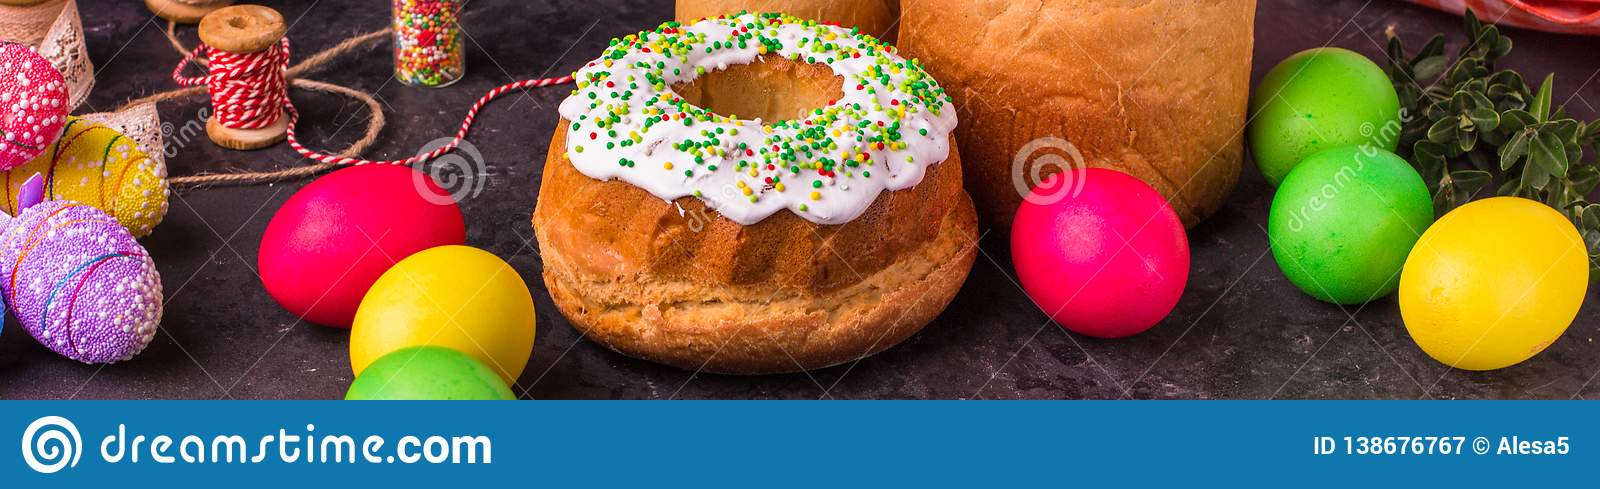 Easter cake and Easter eggs, traditional holiday attributes Happy Easter!. food background. top view